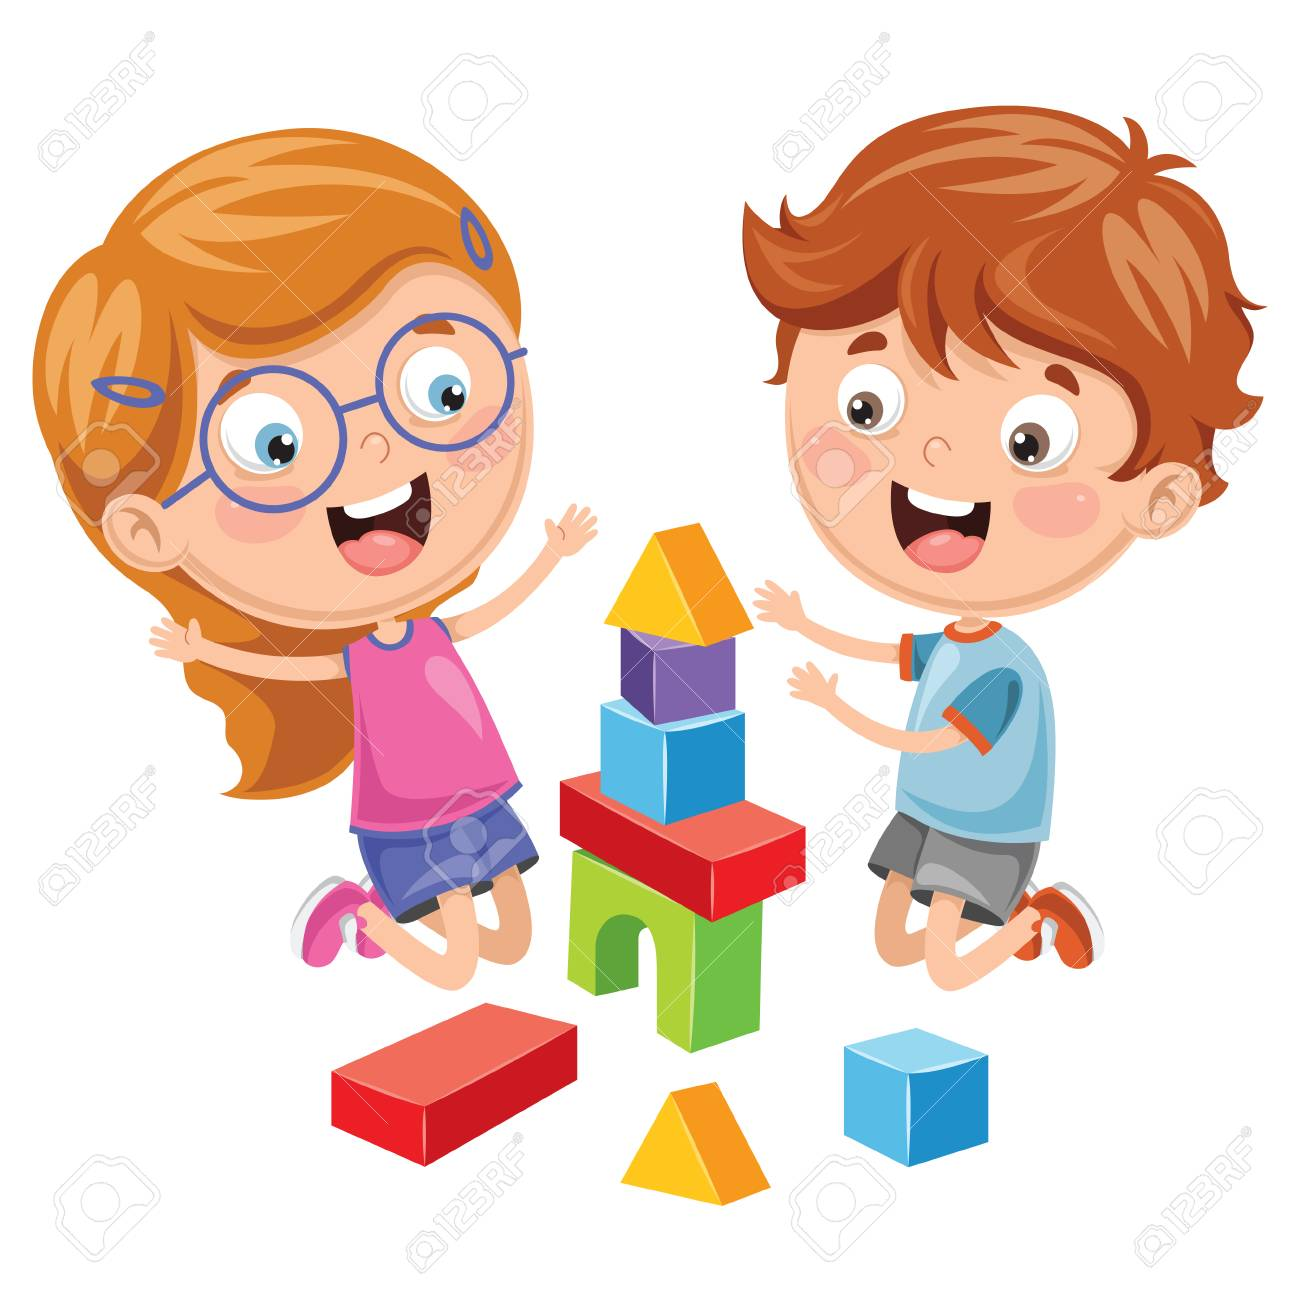 Vector Illustration Of Kid Playing With Building Blocks.